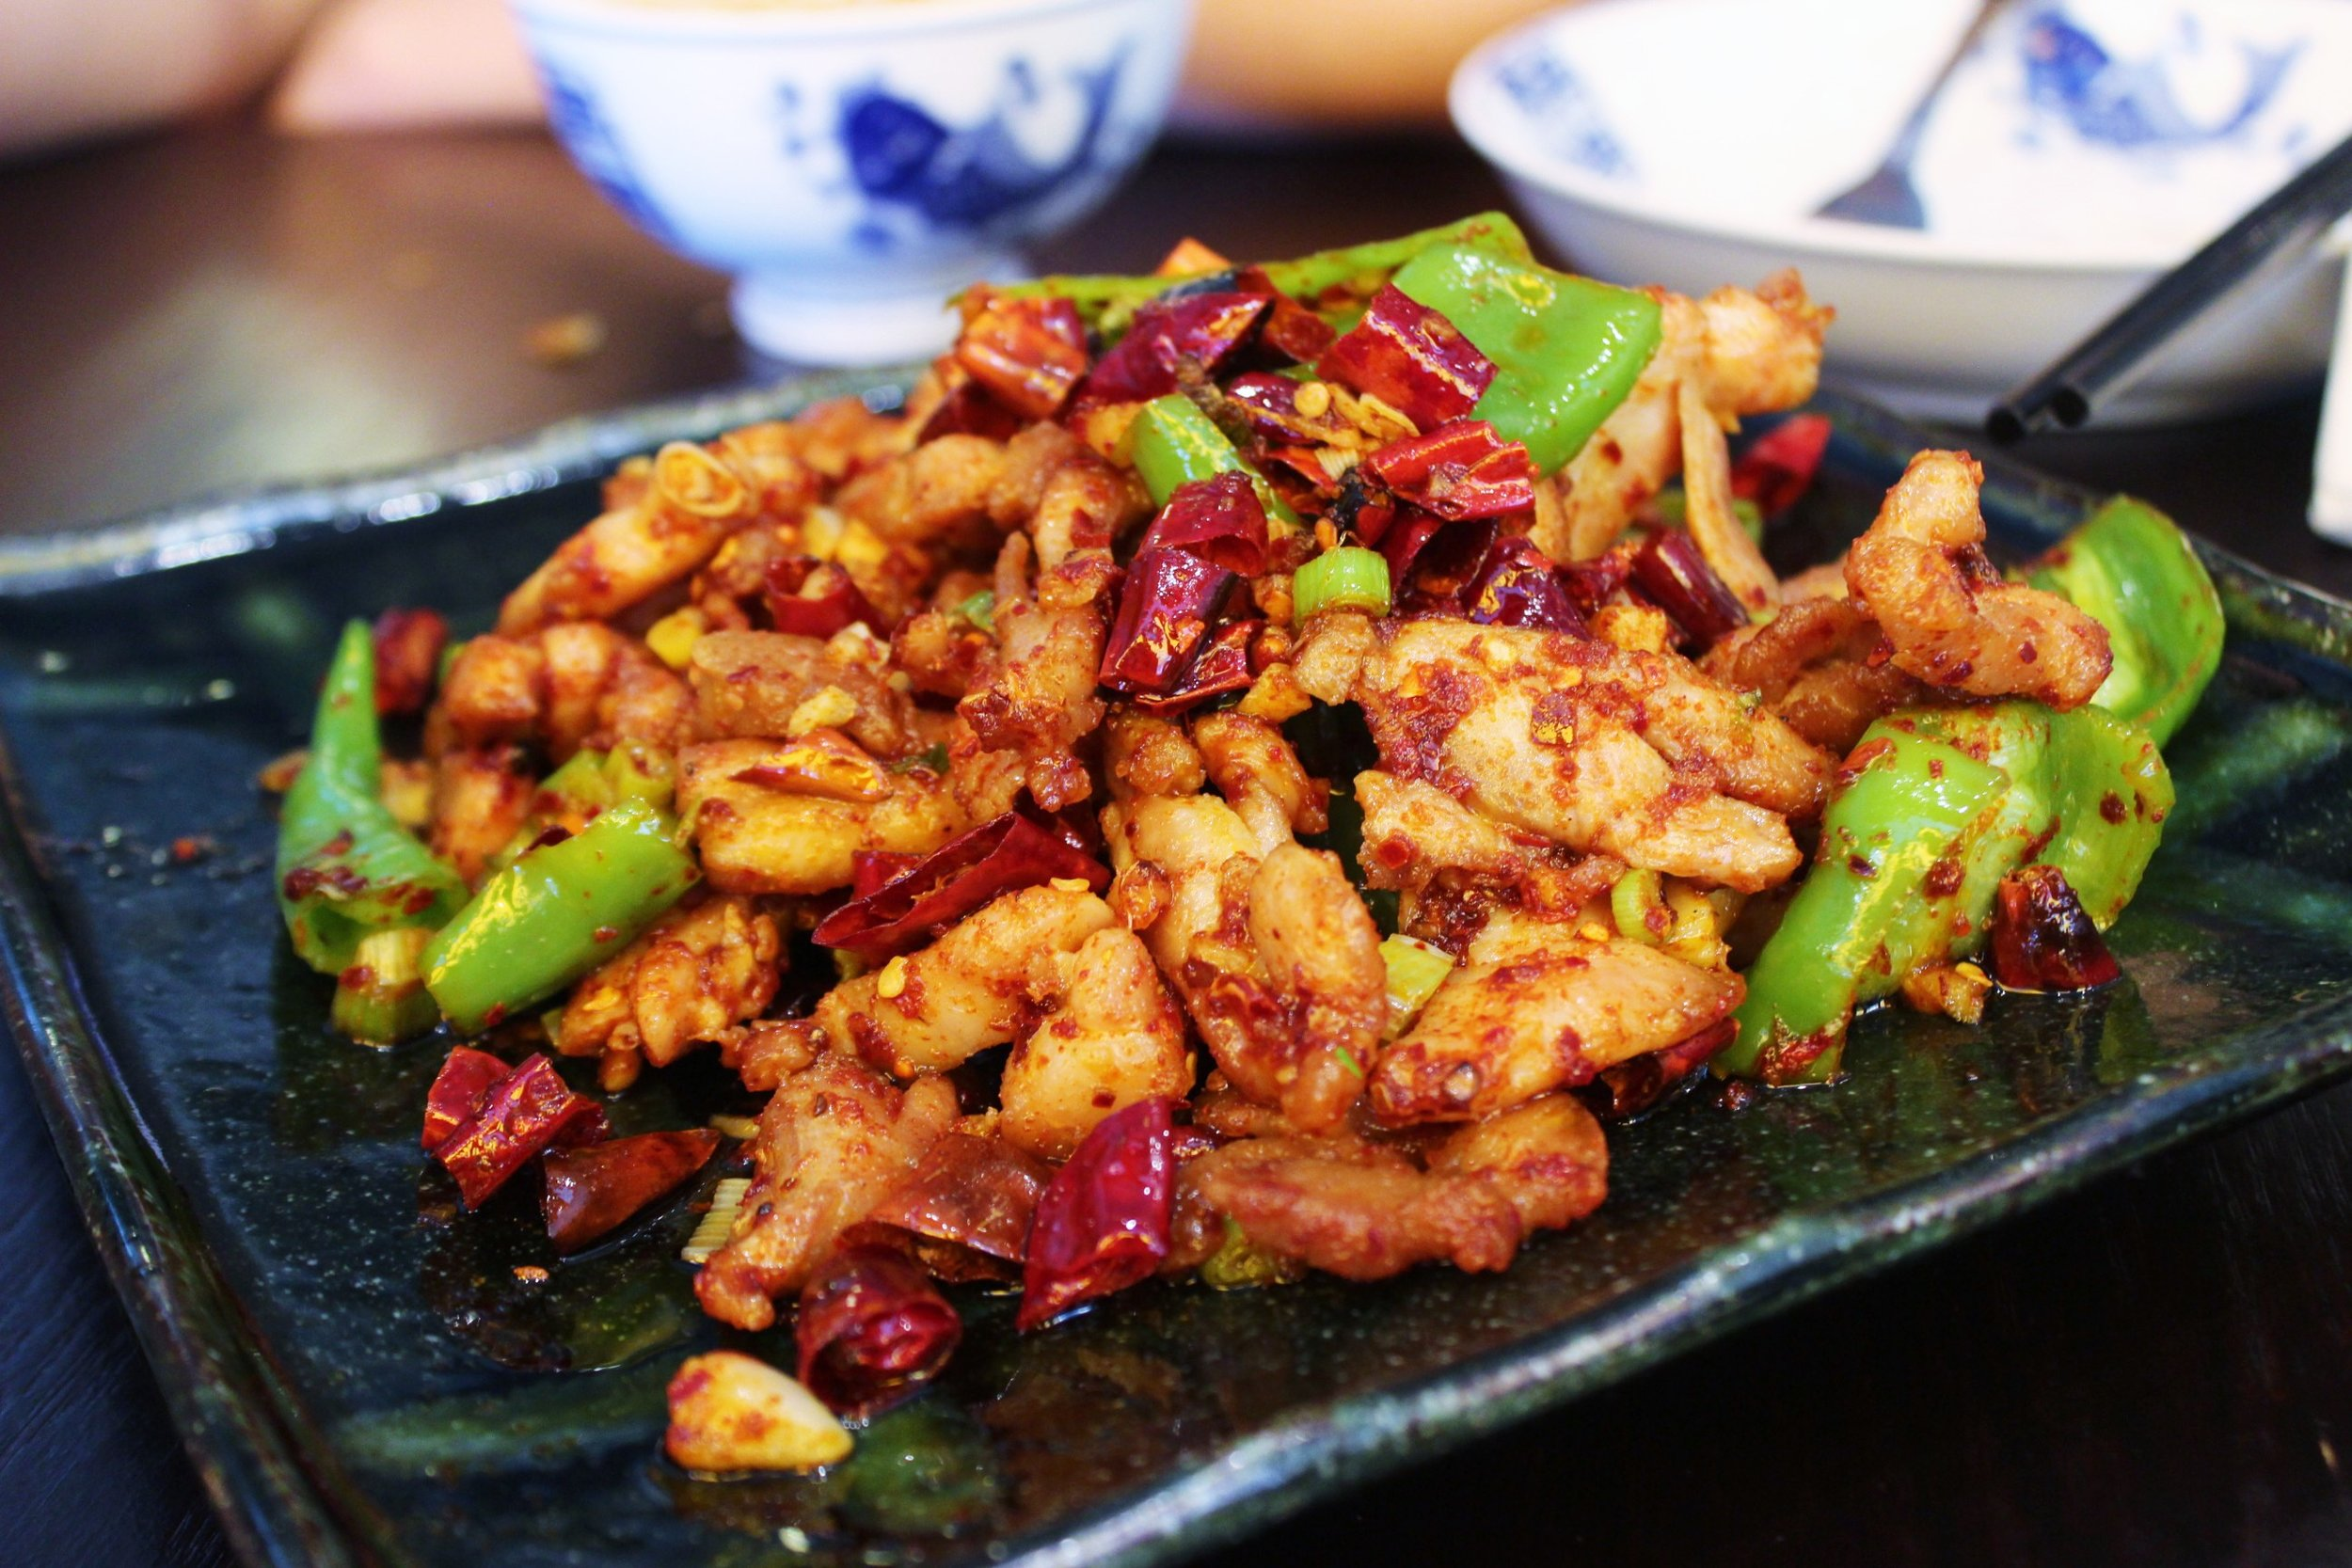 Three Pepper Chicken: Stir-friend with red and green chili peppers and peppercorn